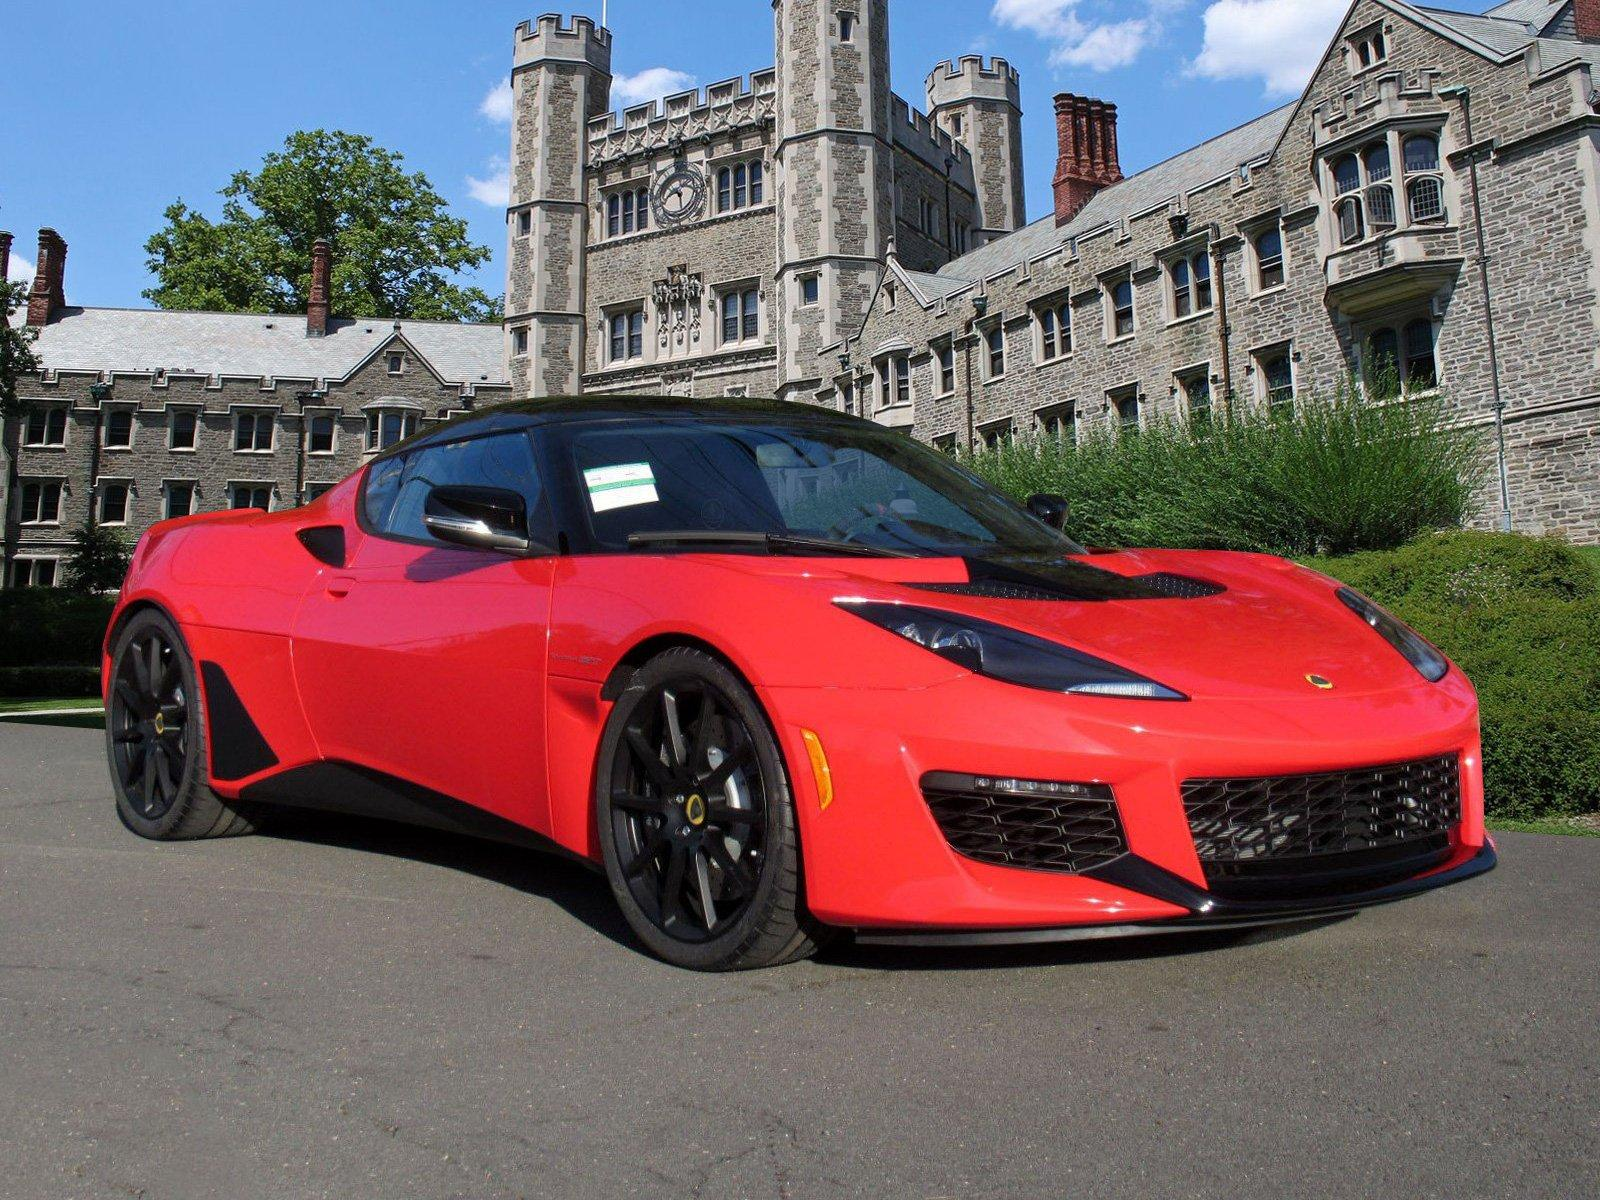 New 2020 Lotus Evora GT for sale $102,595 at Victory Lotus in Princeton NJ 08540 1